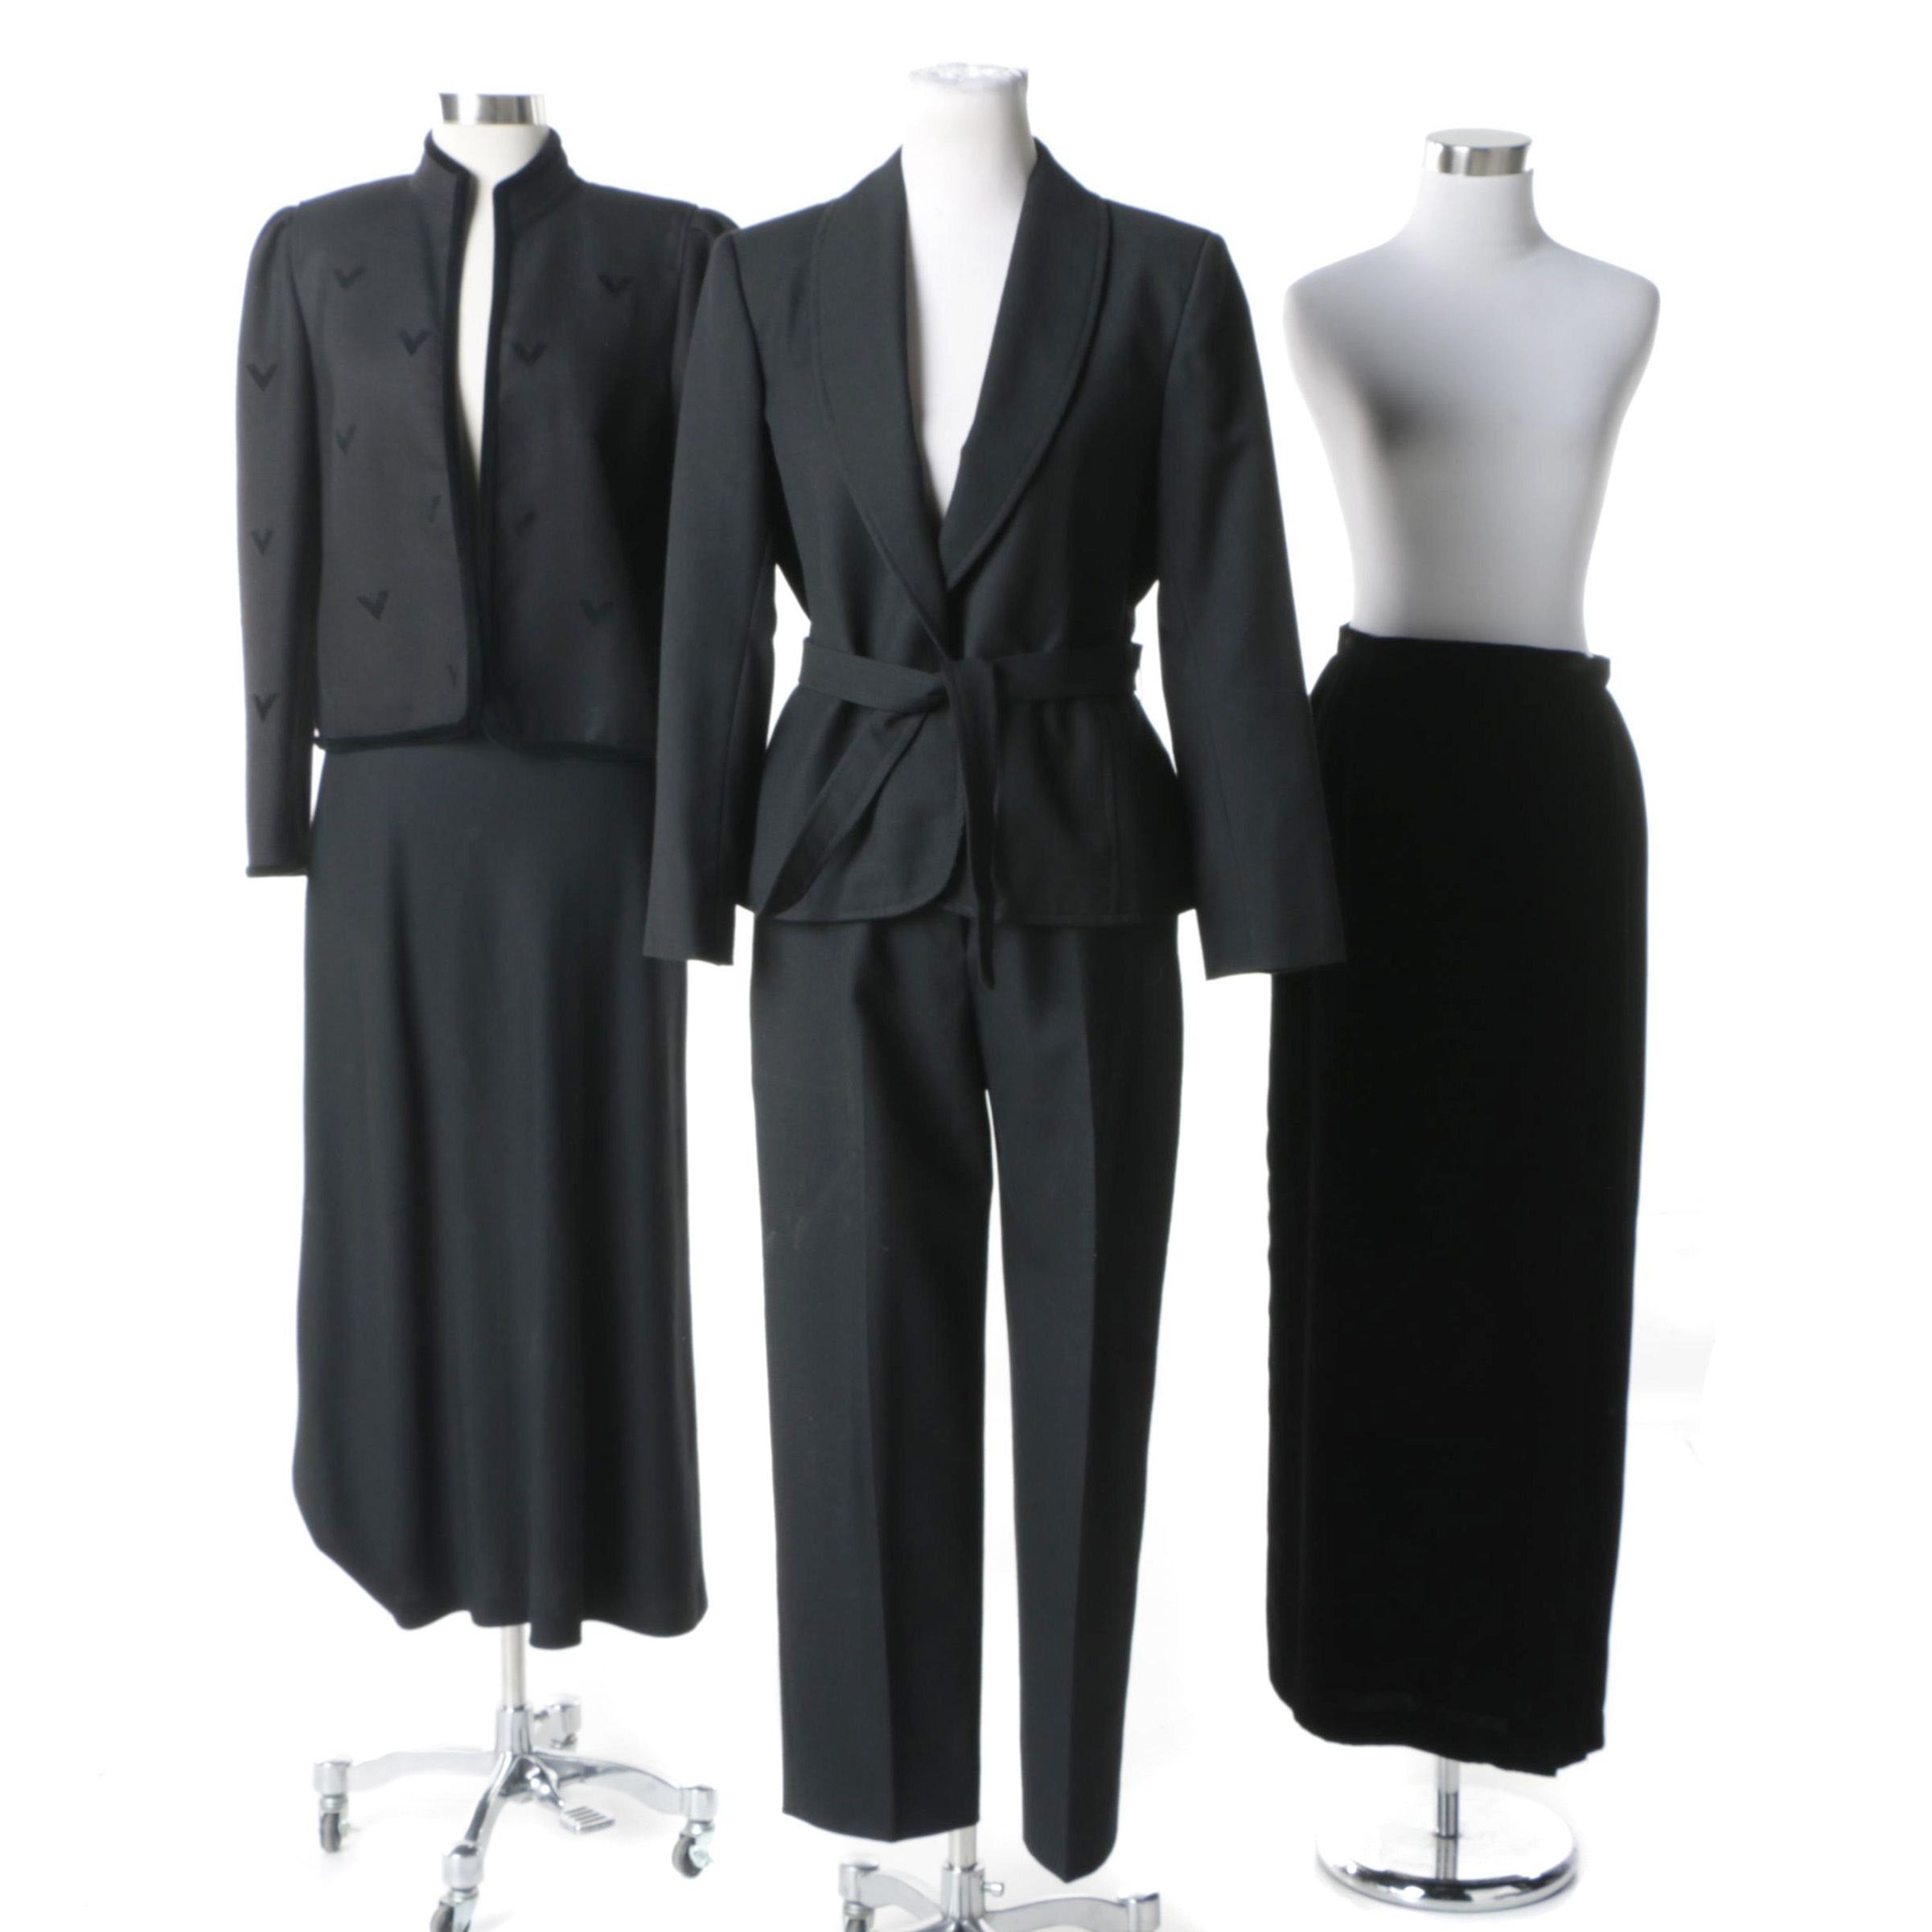 Women's Pantsuit and Separates Including a Louis Feraud Wool Blazer